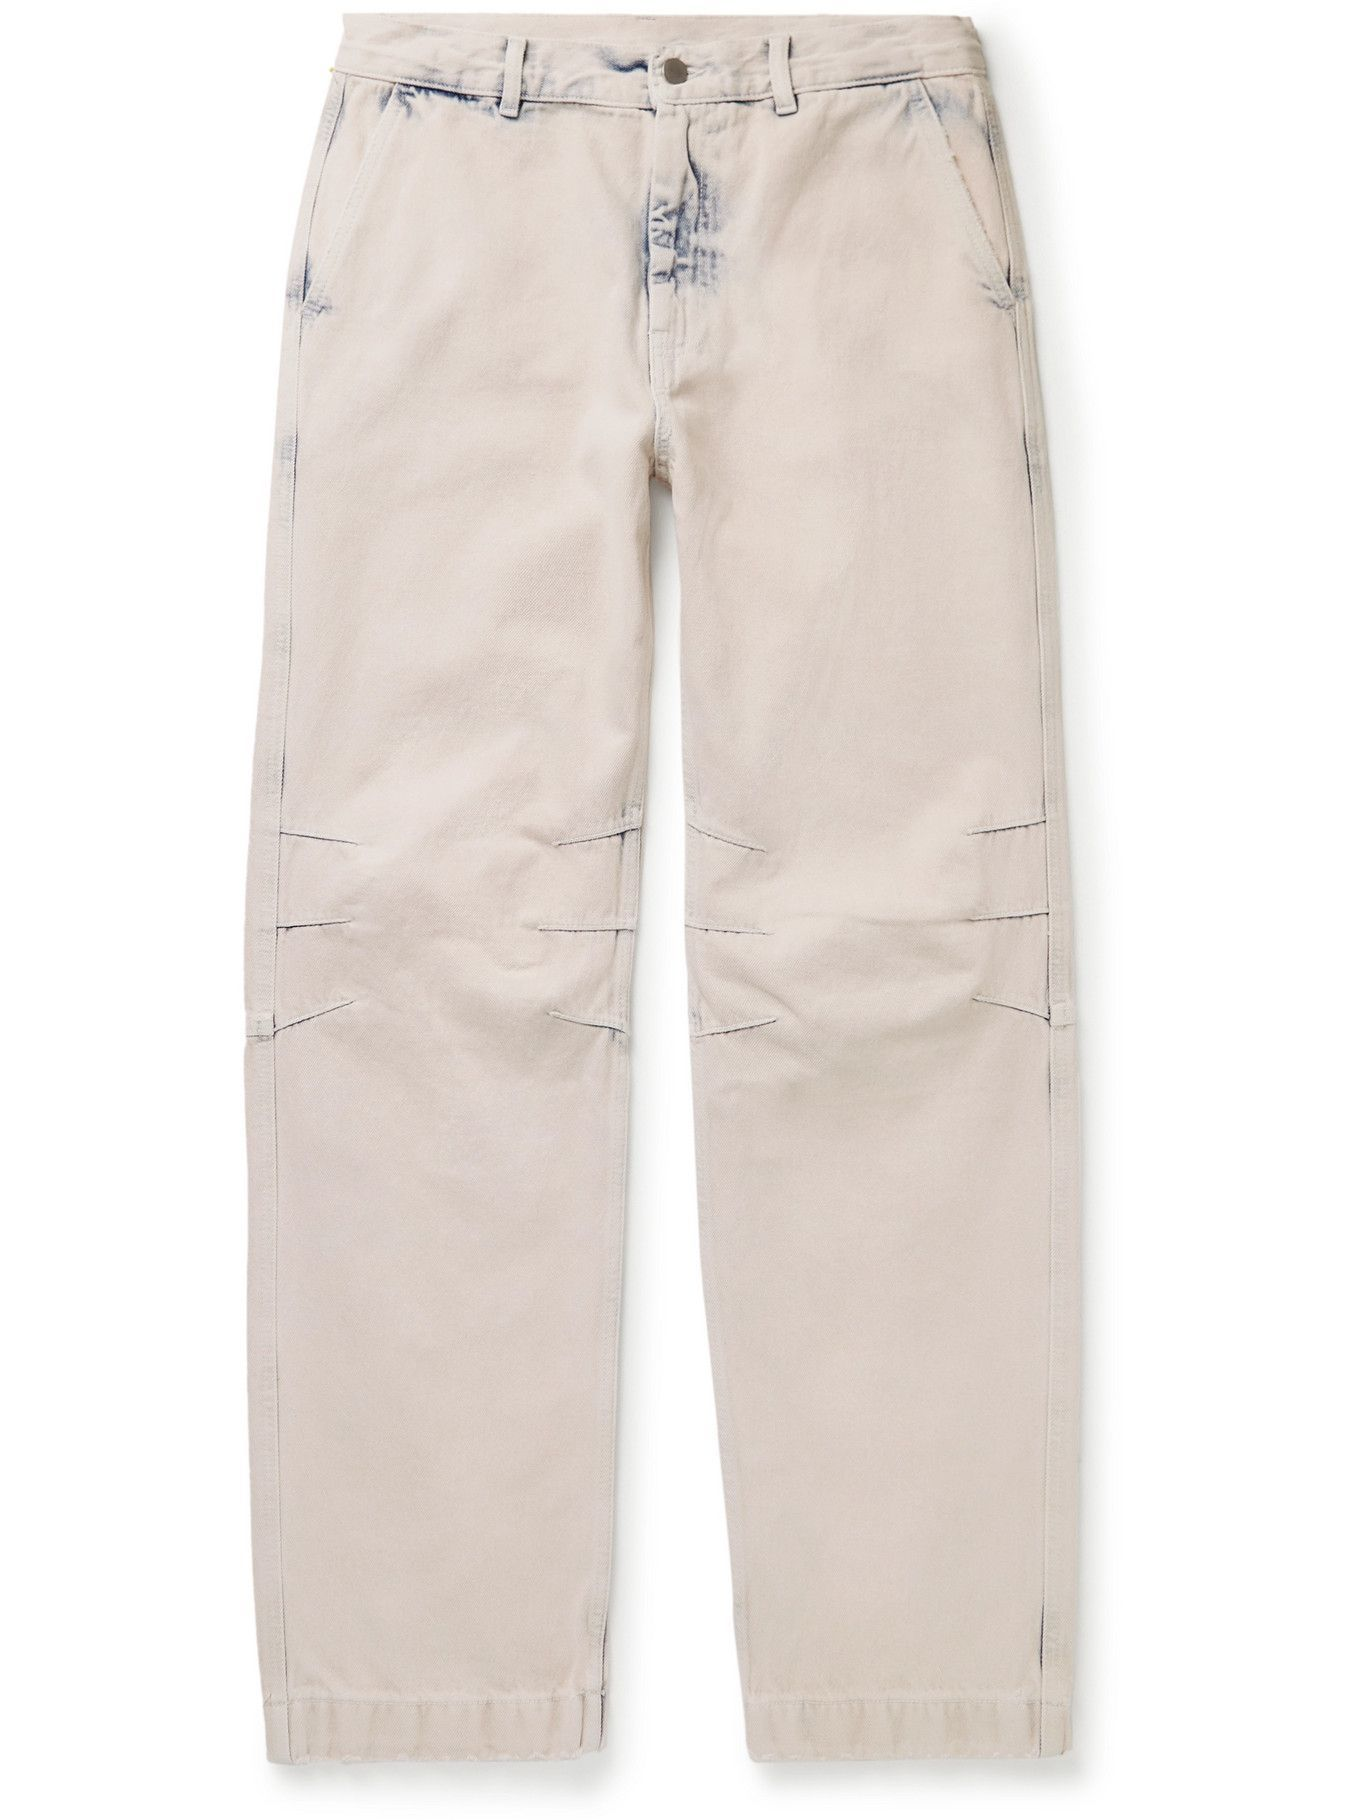 MCQ - Bleached Jeans - Pink